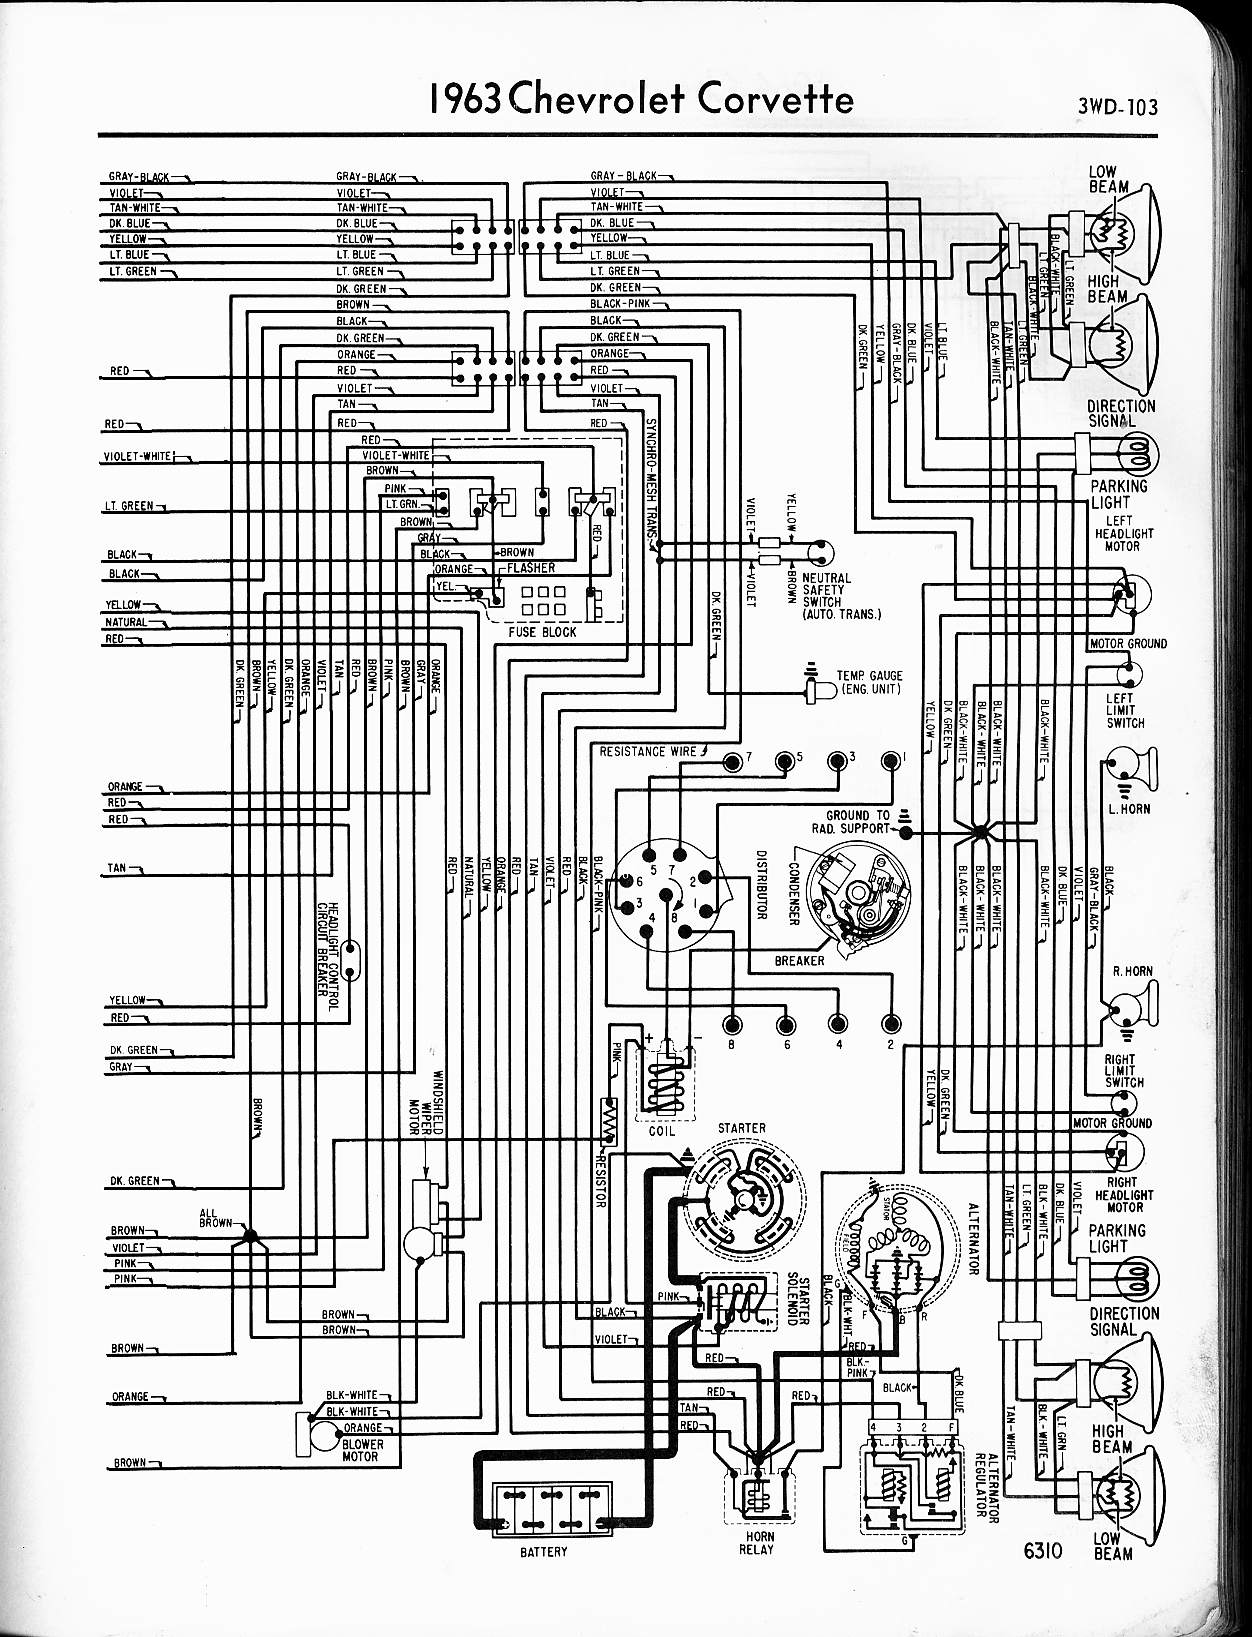 1963 Gmc Wiring Diagram Diagrams 78 Corvette Chevy C20 Schematics